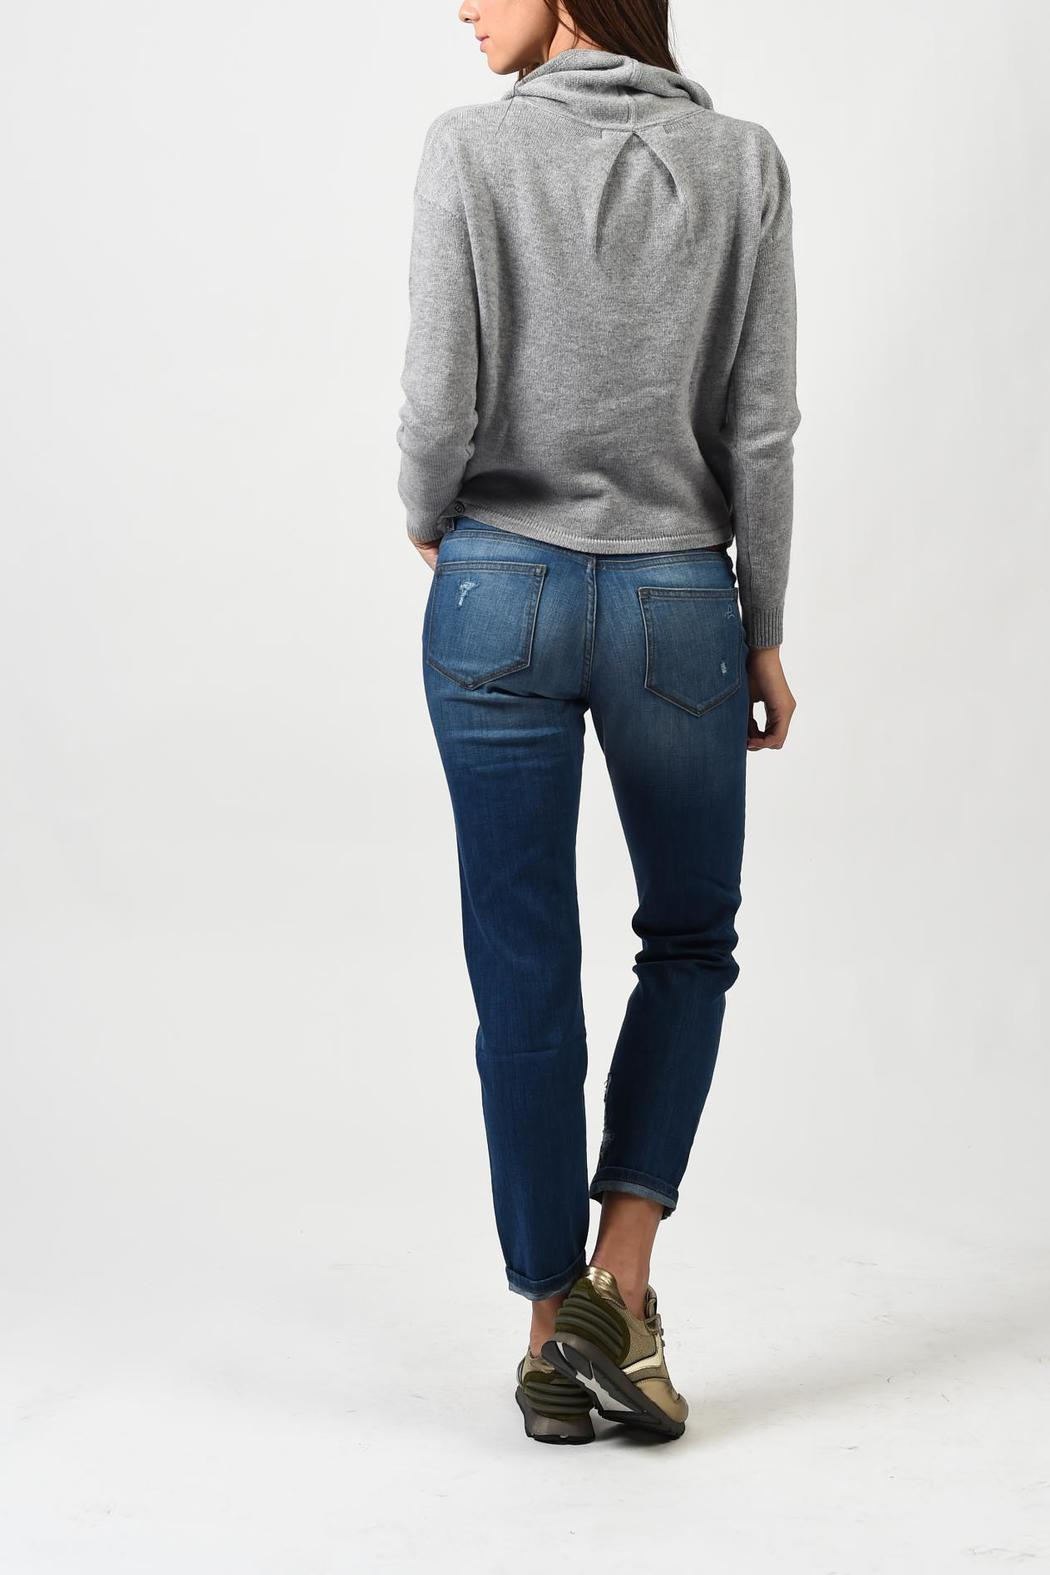 One Grey Day Bryan Sweater - Side Cropped Image